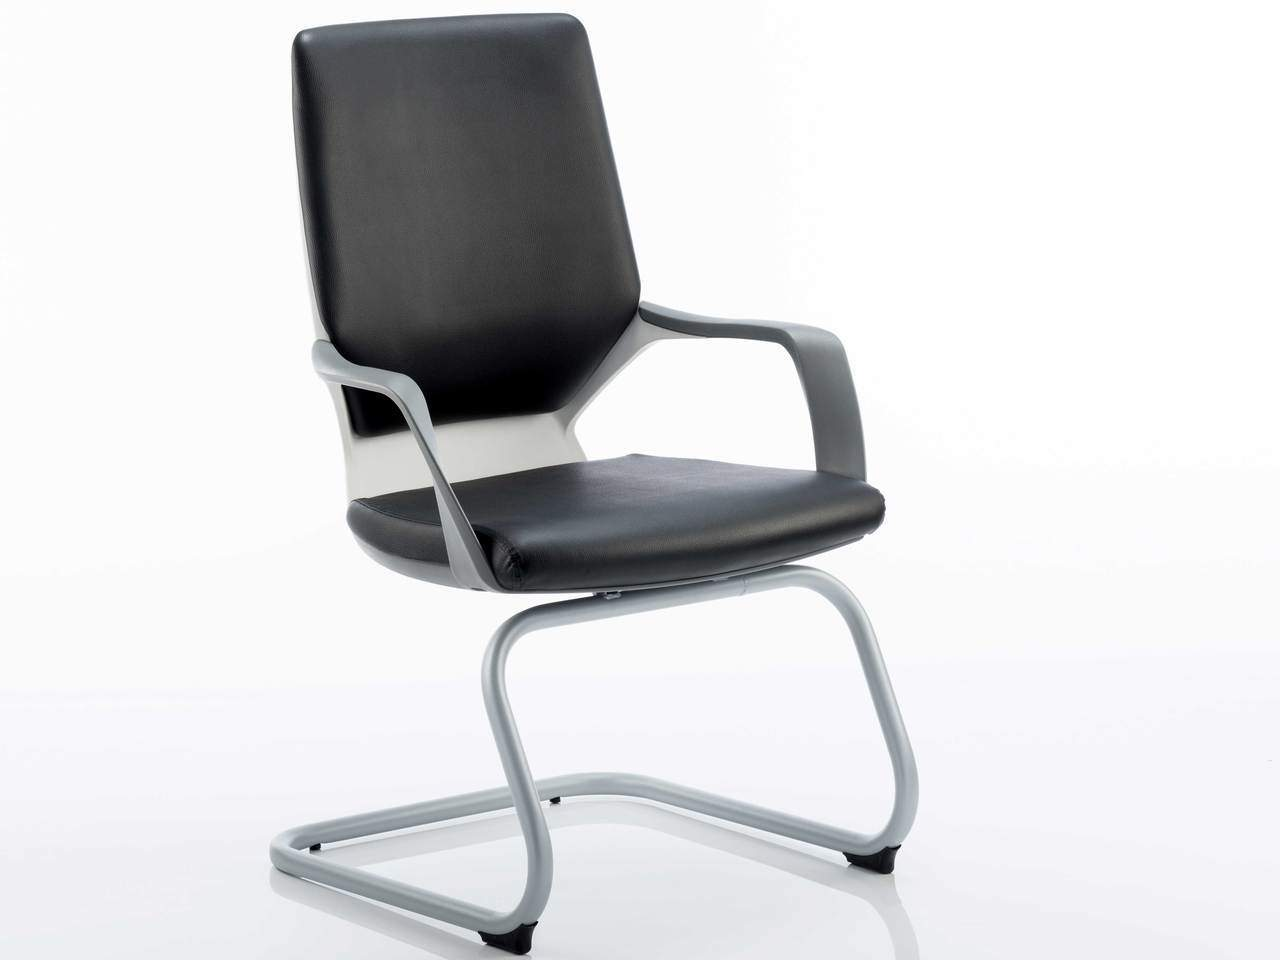 Xenon Leather Executive Cantilever Office Chair in Black or White